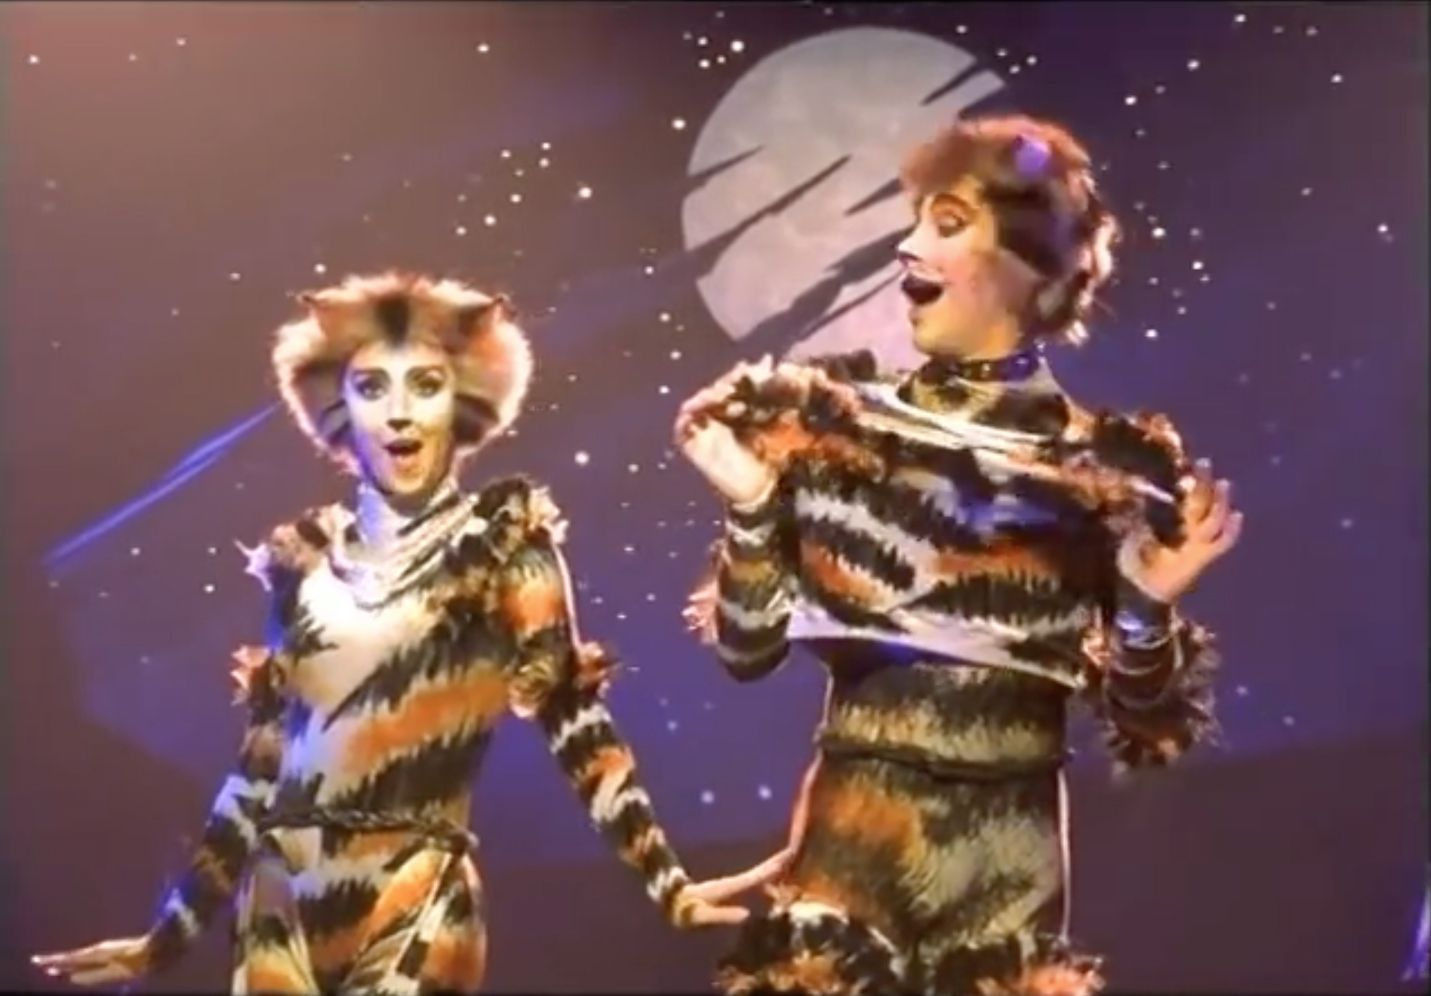 Catch Cats The Musical In Singapore Before It Ends Its Run On Feb 1 Alvinology Cats The Musical Costume Cat Movie Cats Musical